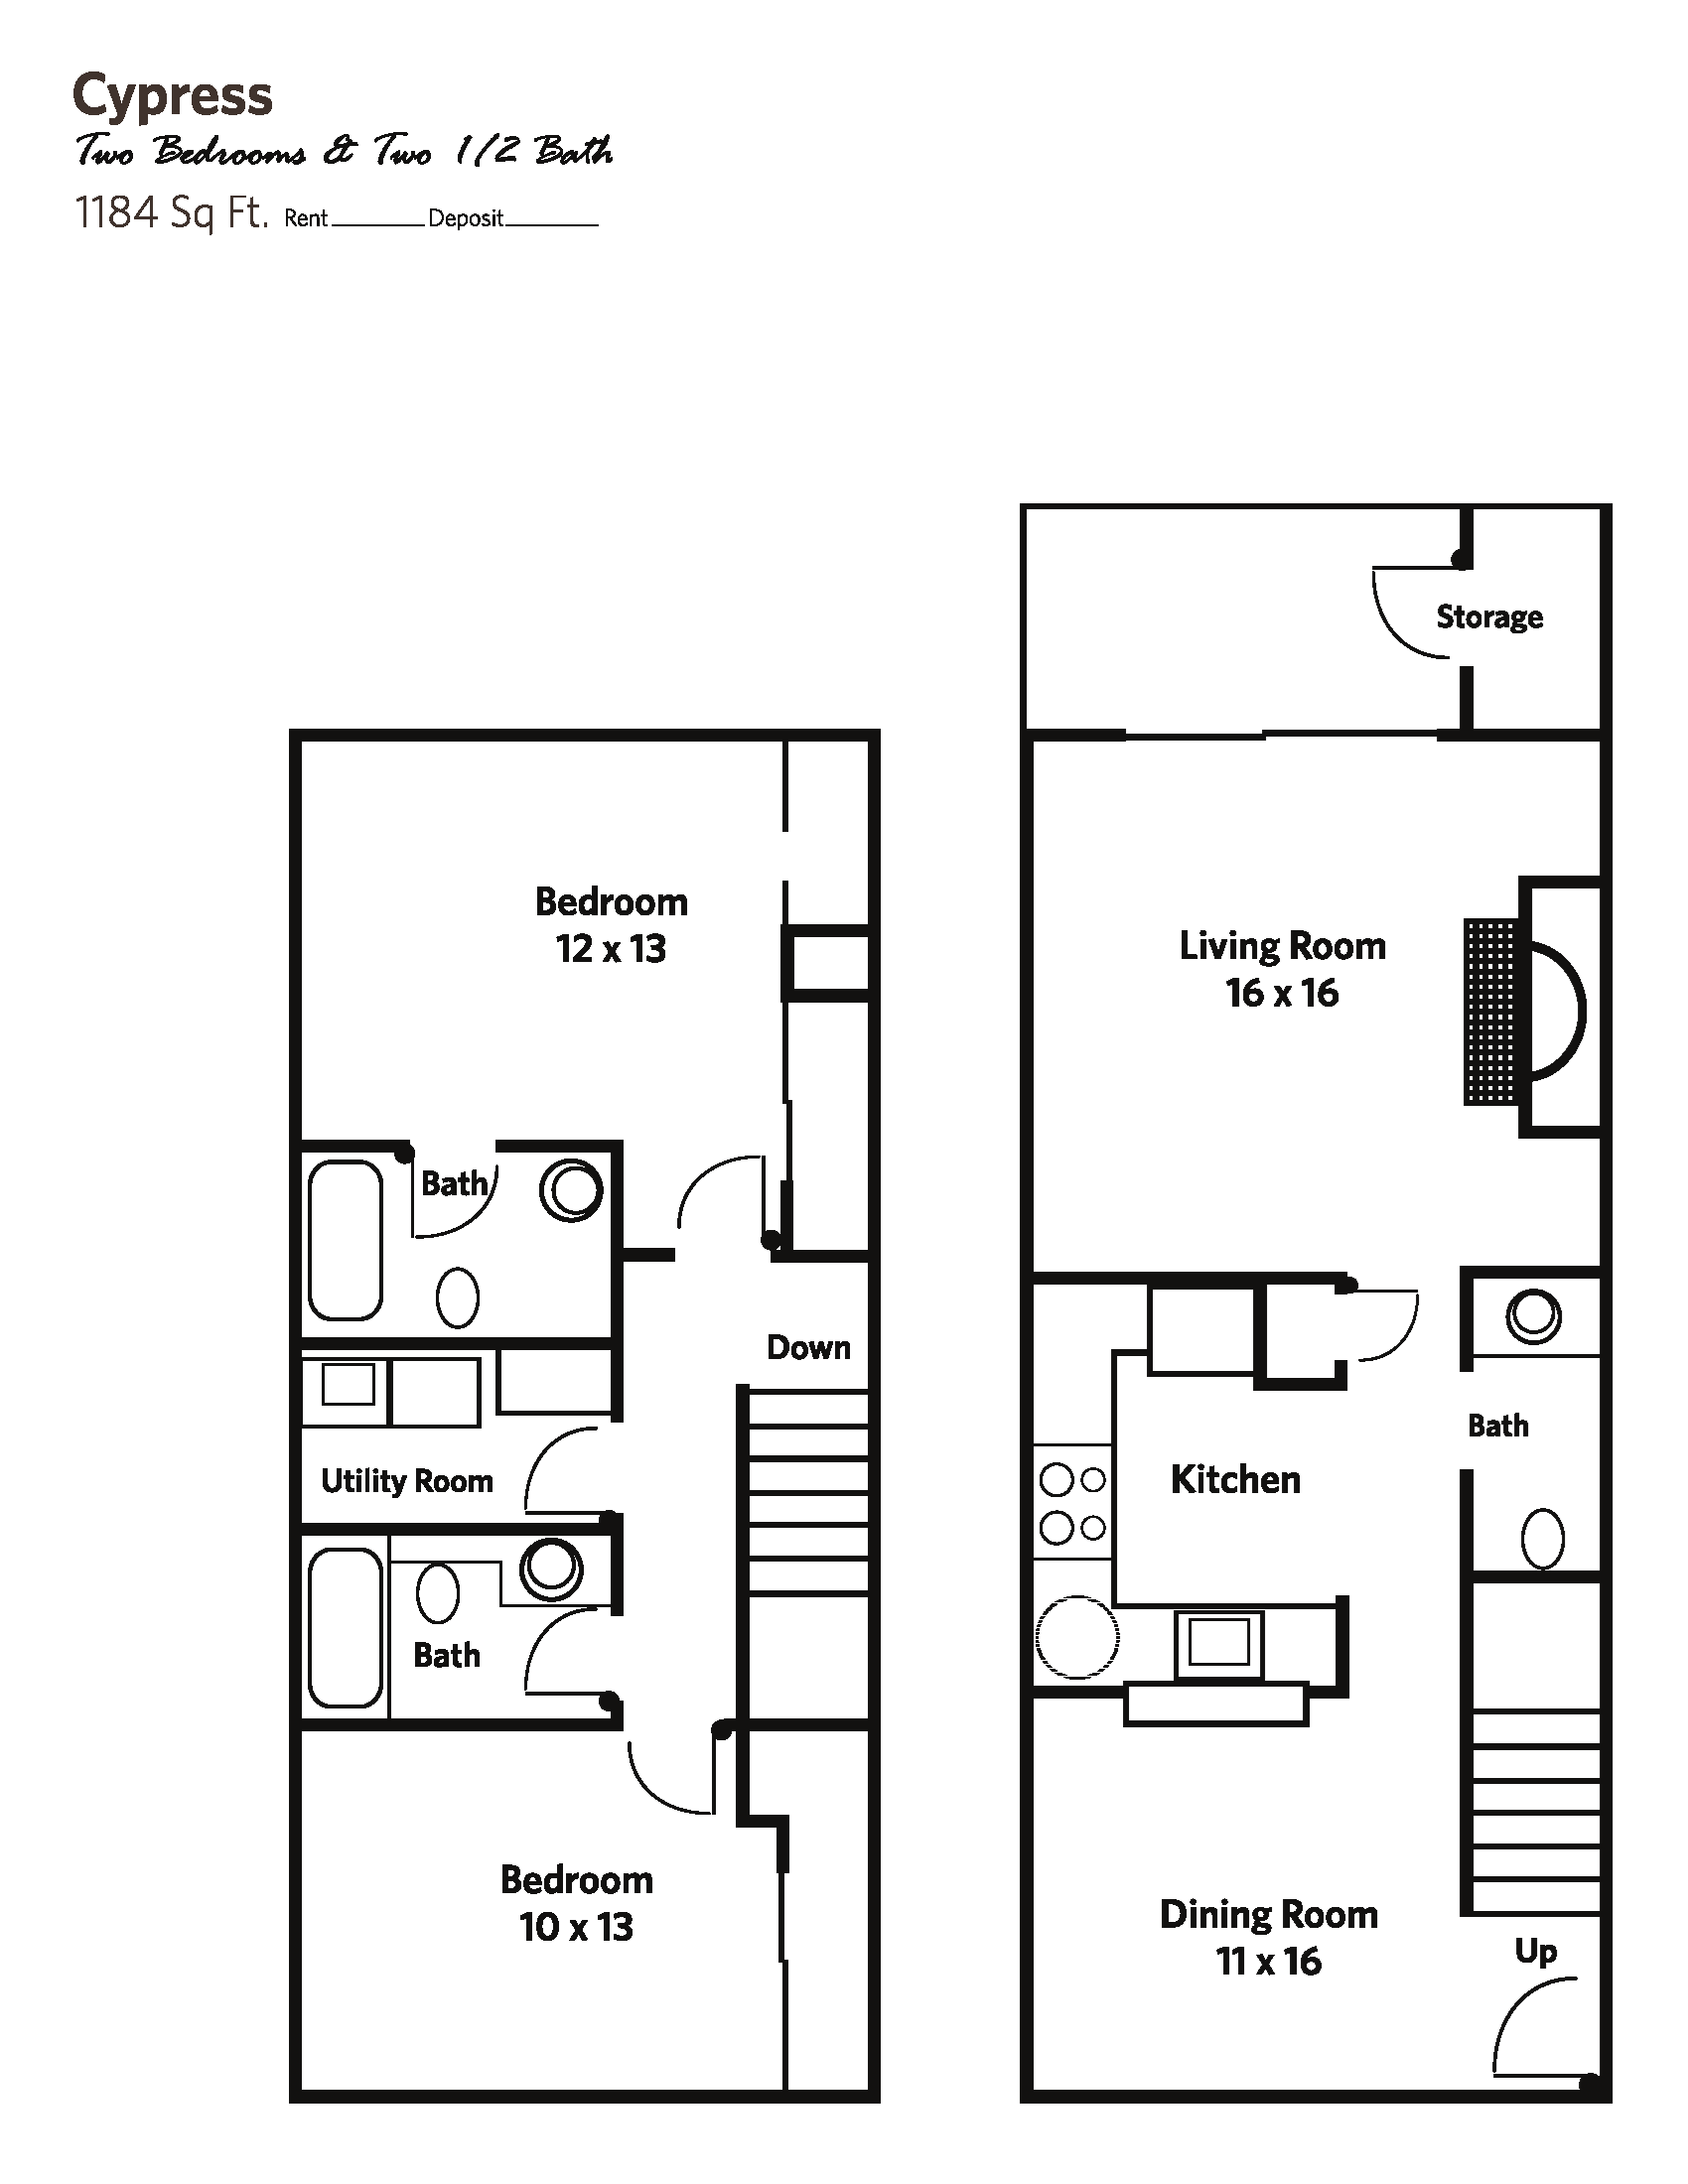 CYPRESS (2 bed + 2 bath w/view) - Townhomes Floor Plan 5